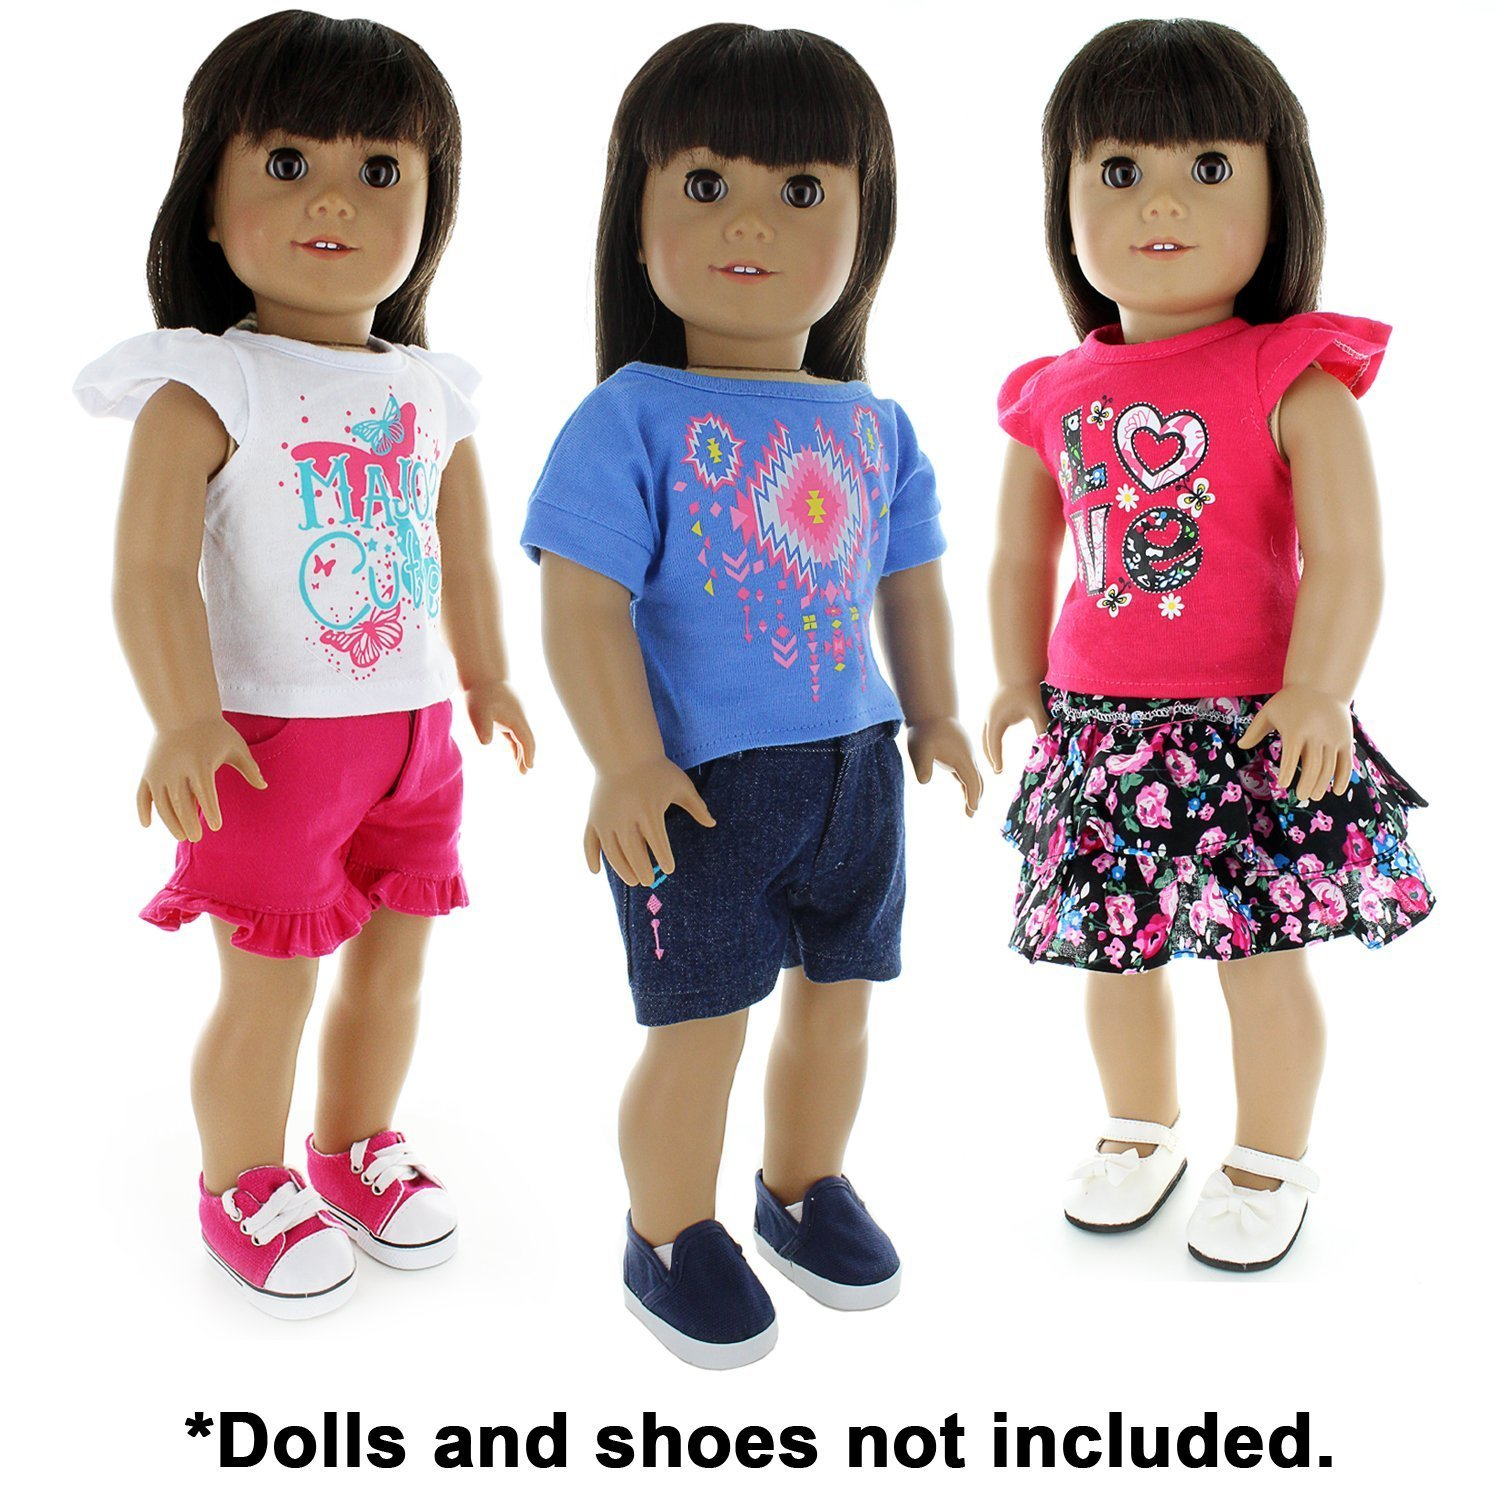 1a7e1ba1120e Amazon.com: Pink Butterfly Closet Doll Clothes - 6 Pieces Mix and Match  Clothes Outfit Fits American Girl Doll, My Life Doll and Other 18 inch Dolls:  Toys & ...